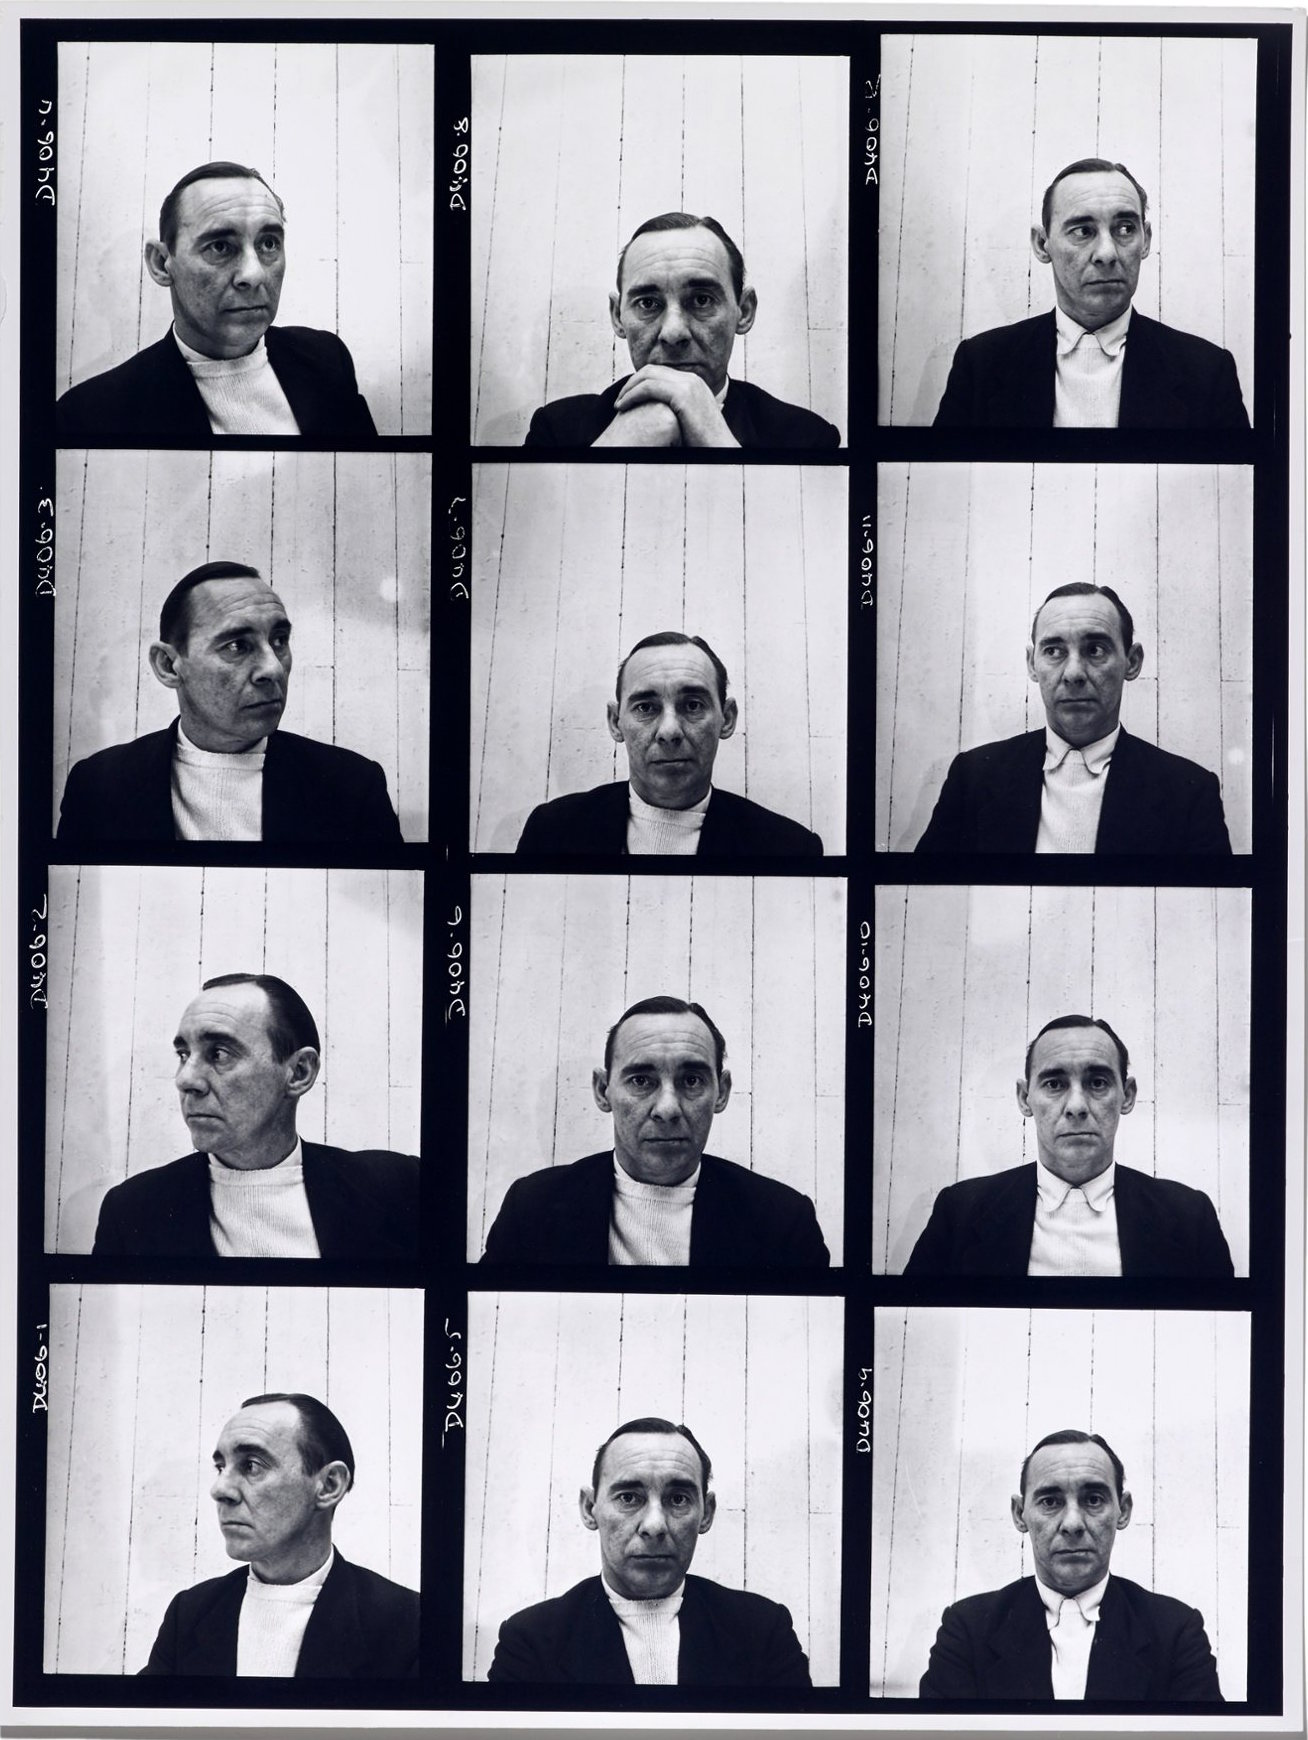 Contact sheet of self-portraits, 1952. (Vogue). Copyright John Deakin/Vogue Copyright 2014 The Conde Nast Publications Ltd